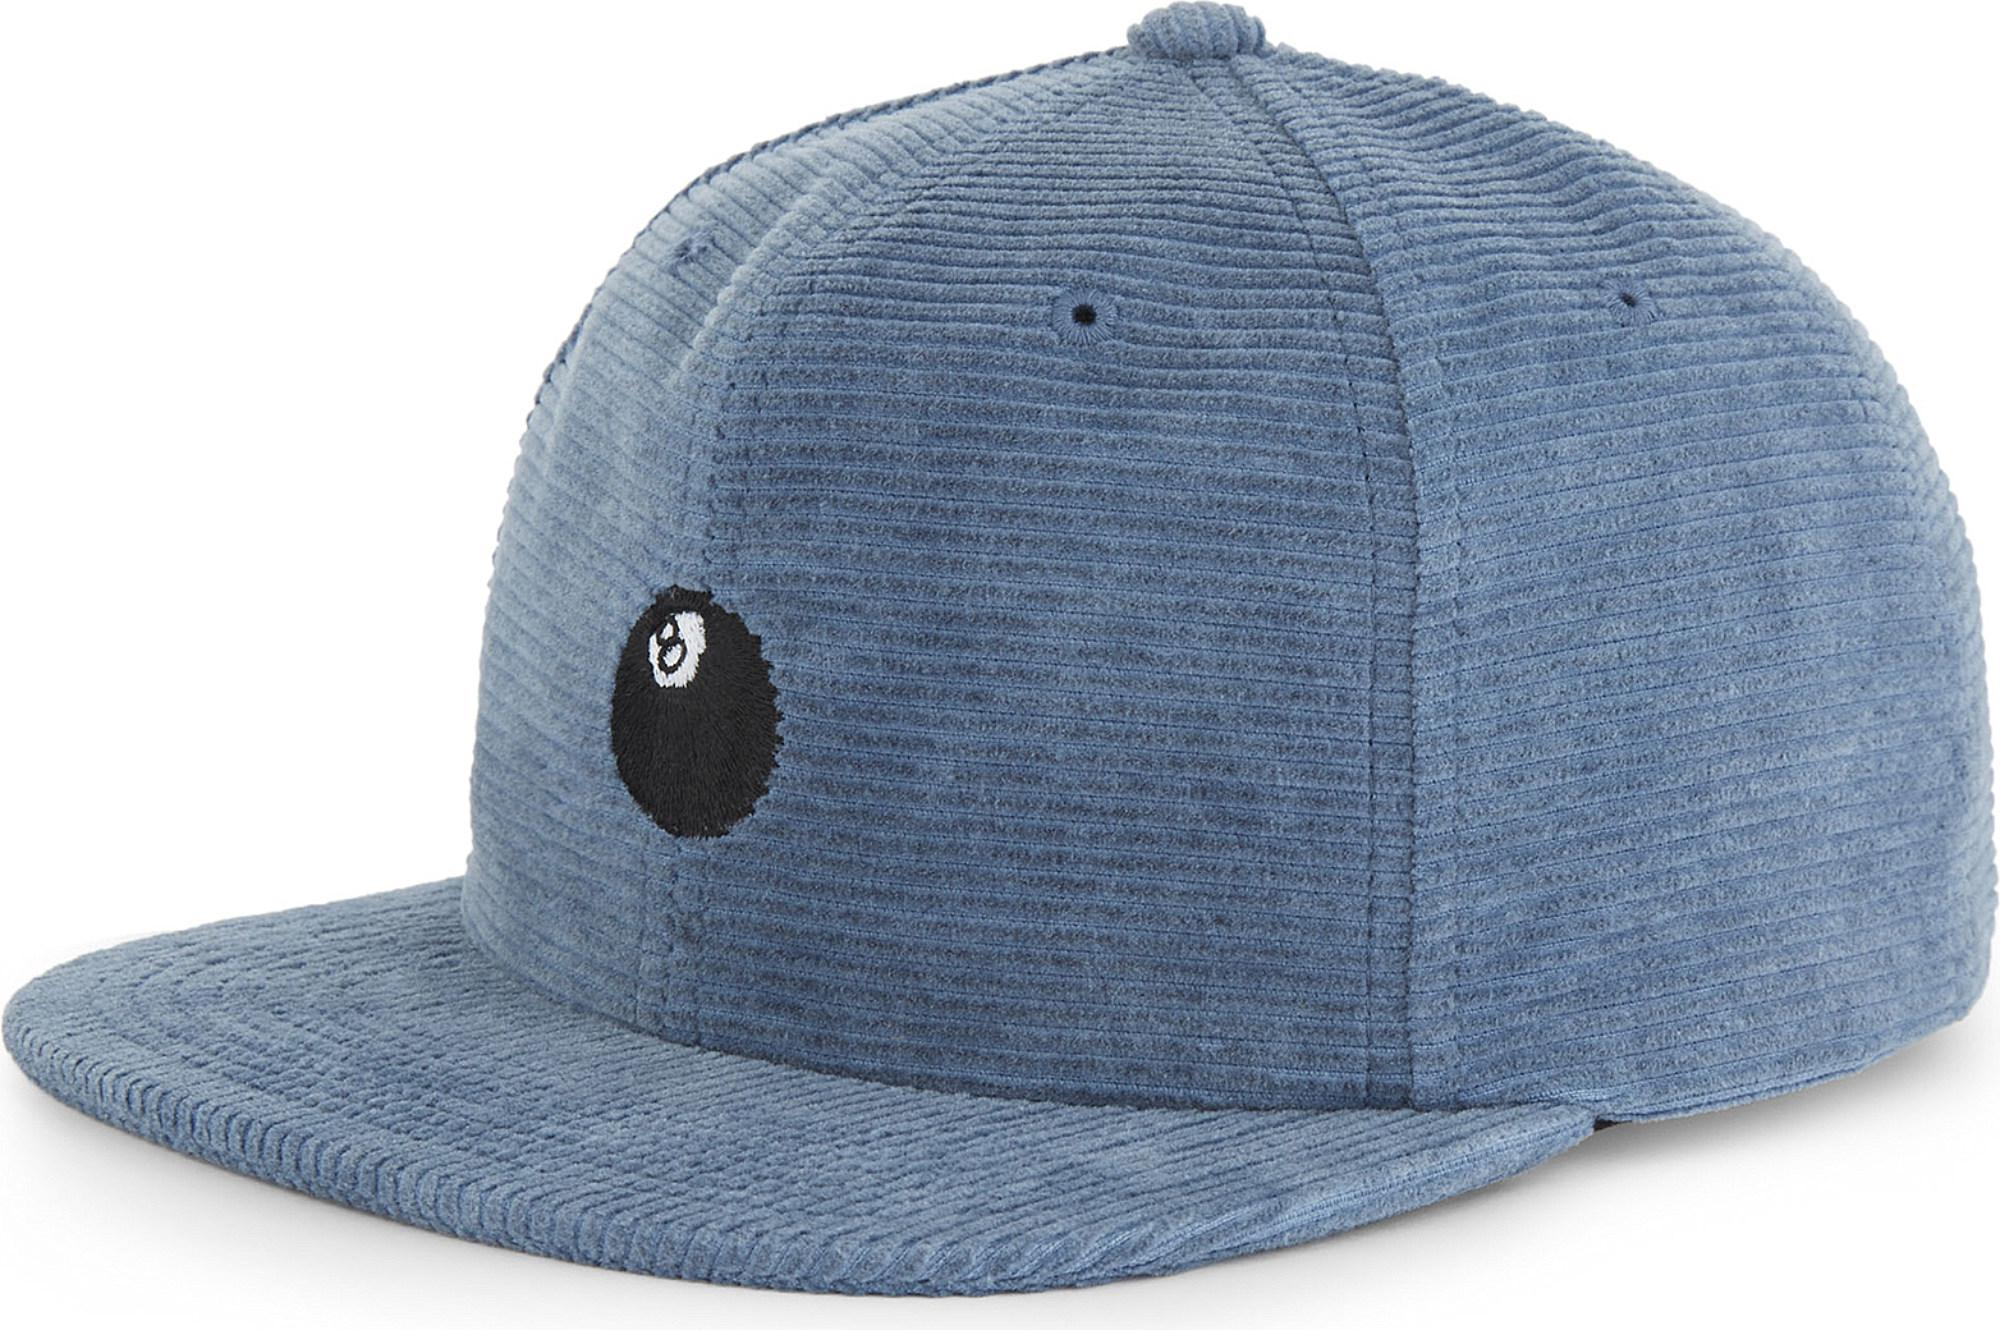 5f8a62557 Stussy 8 Ball Corduroy Strapback Cap in Blue for Men - Lyst